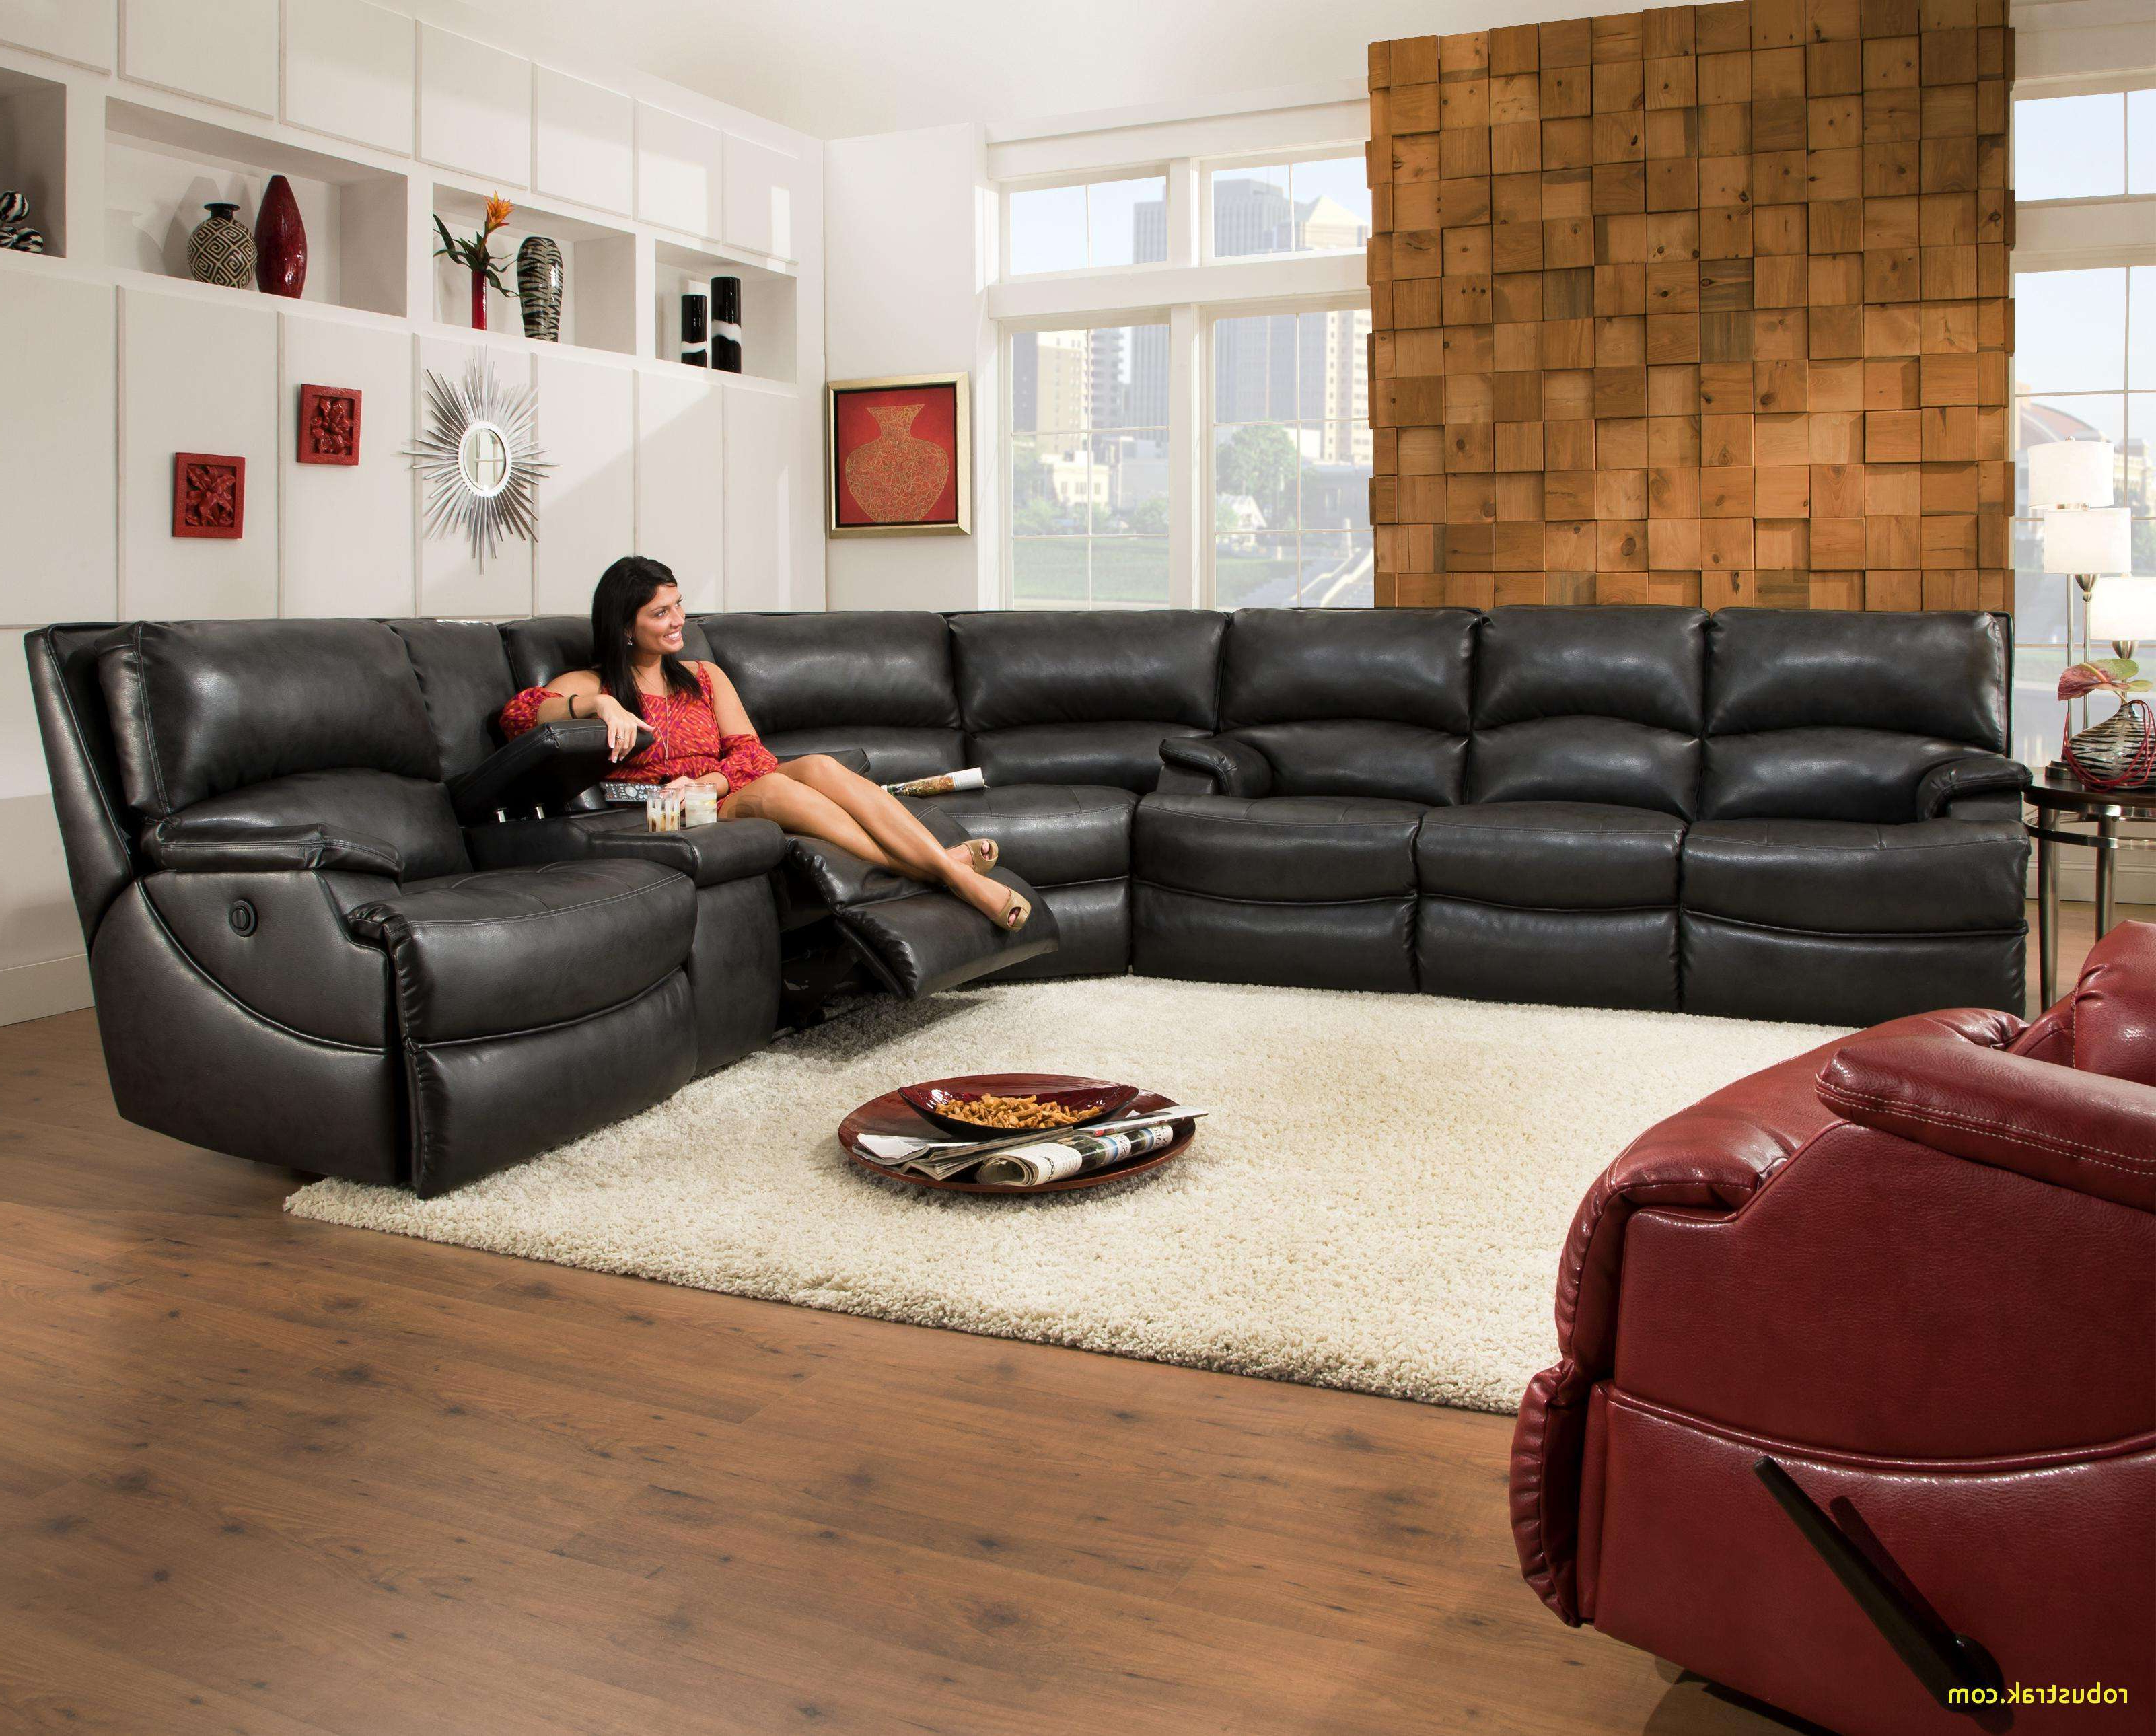 Widely Used Calder Grey 6 Piece Manual Reclining Sectionals Pertaining To Winsome Recliner Cuddler Brown Piece Manual Reclining Sectional Sofa (View 19 of 20)